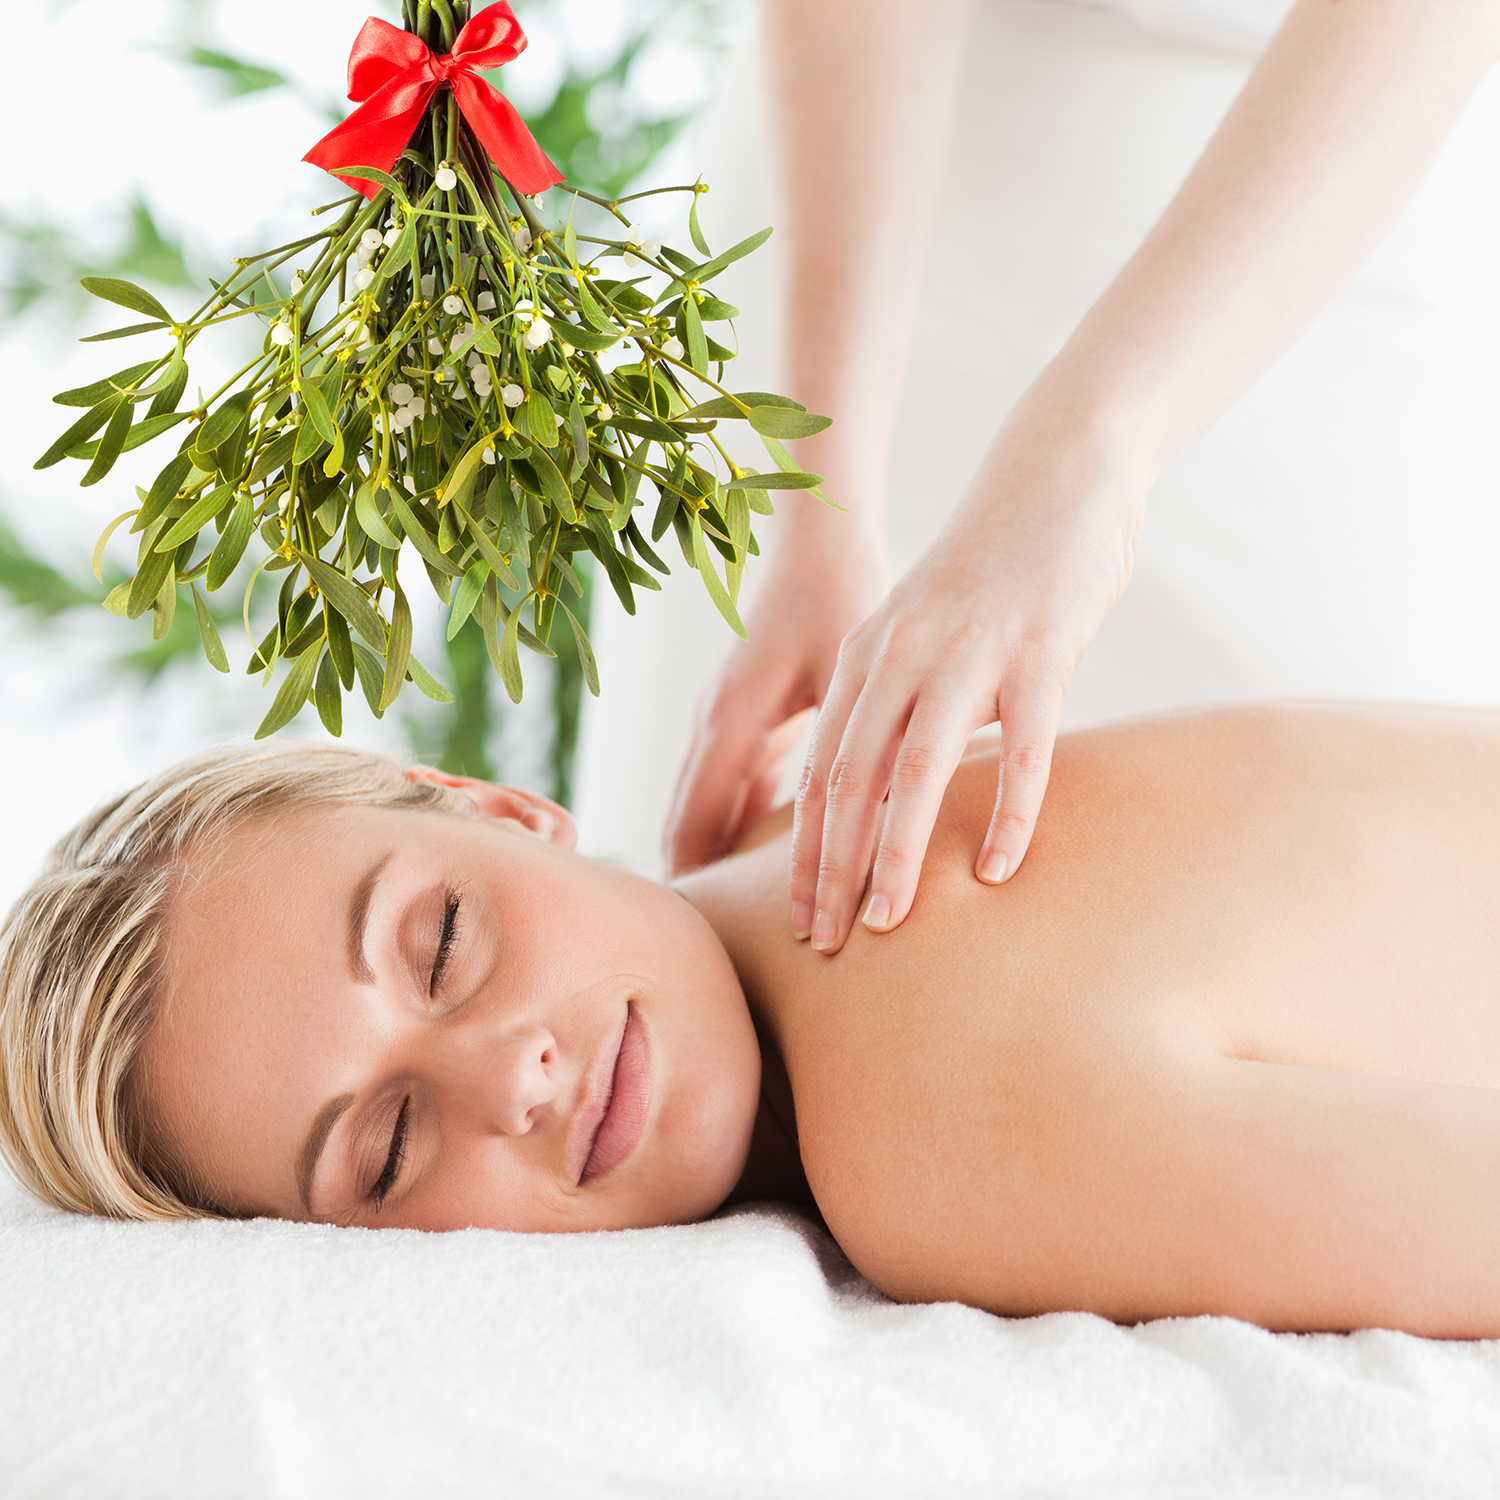 image of woman getting a massage with mistletoe hanging above her head.